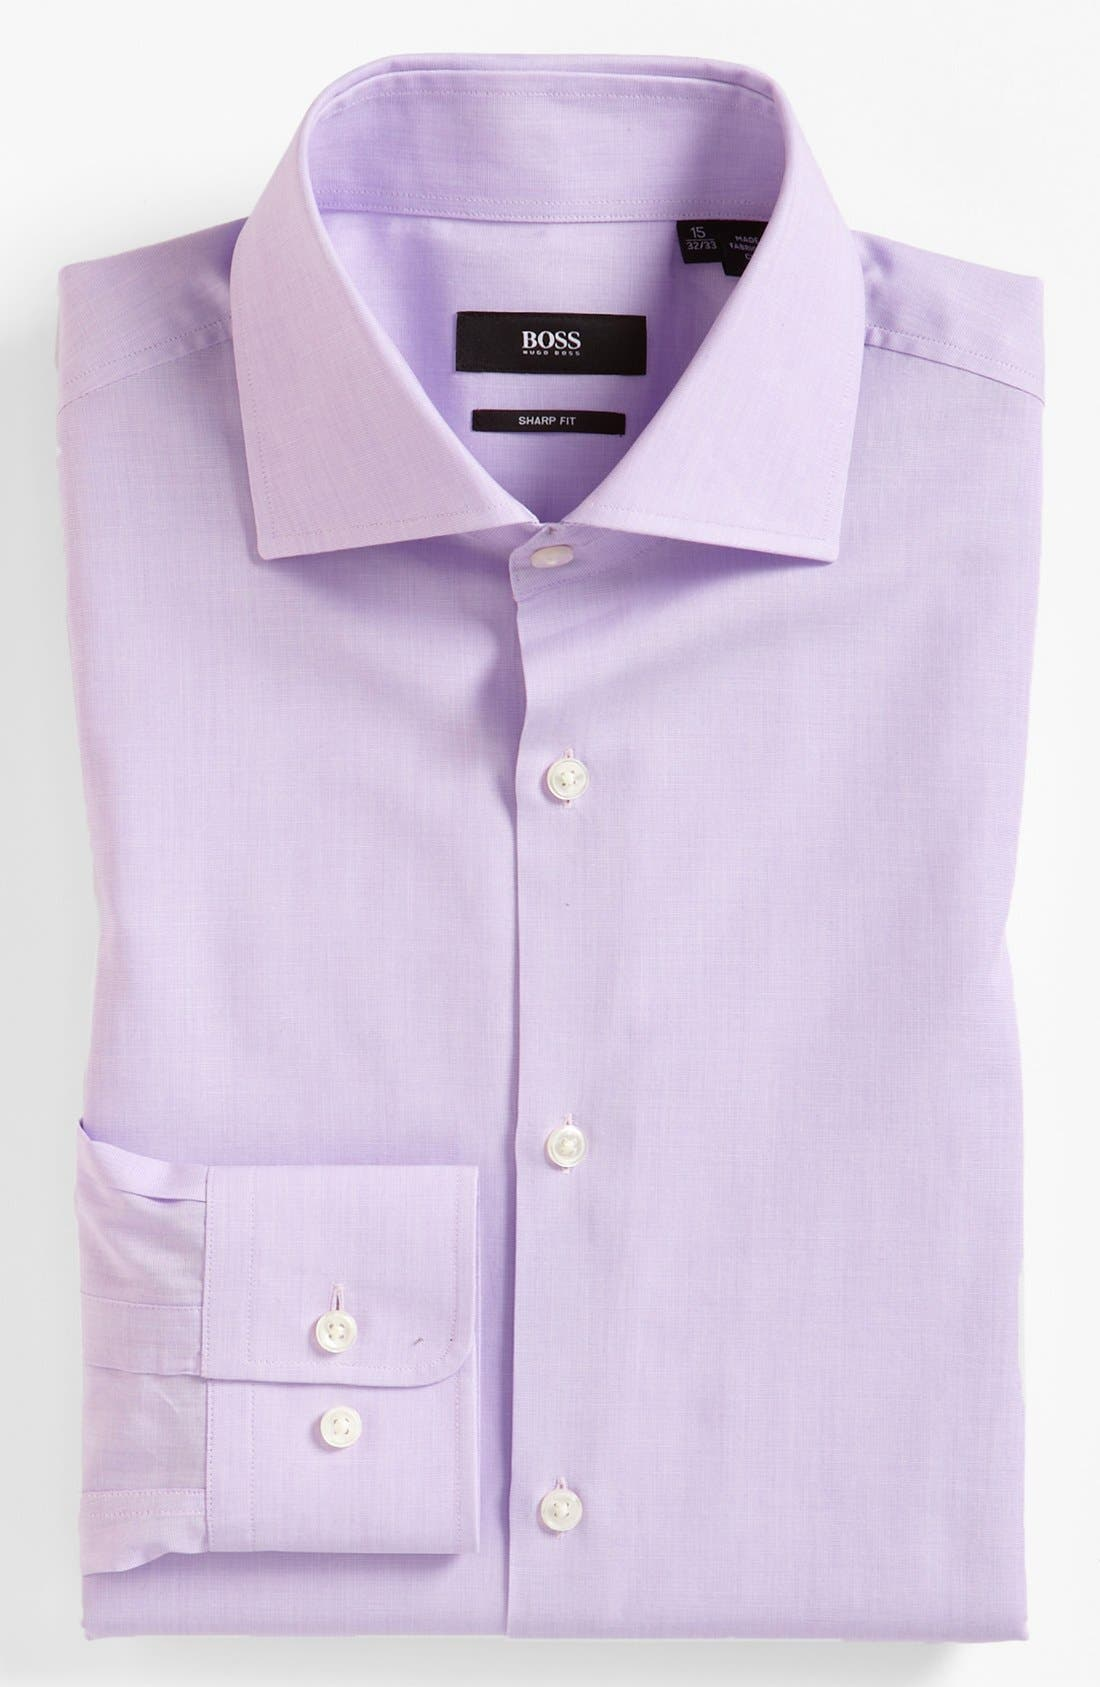 Main Image - BOSS 'Miles' Sharp Fit End-on-End Dress Shirt